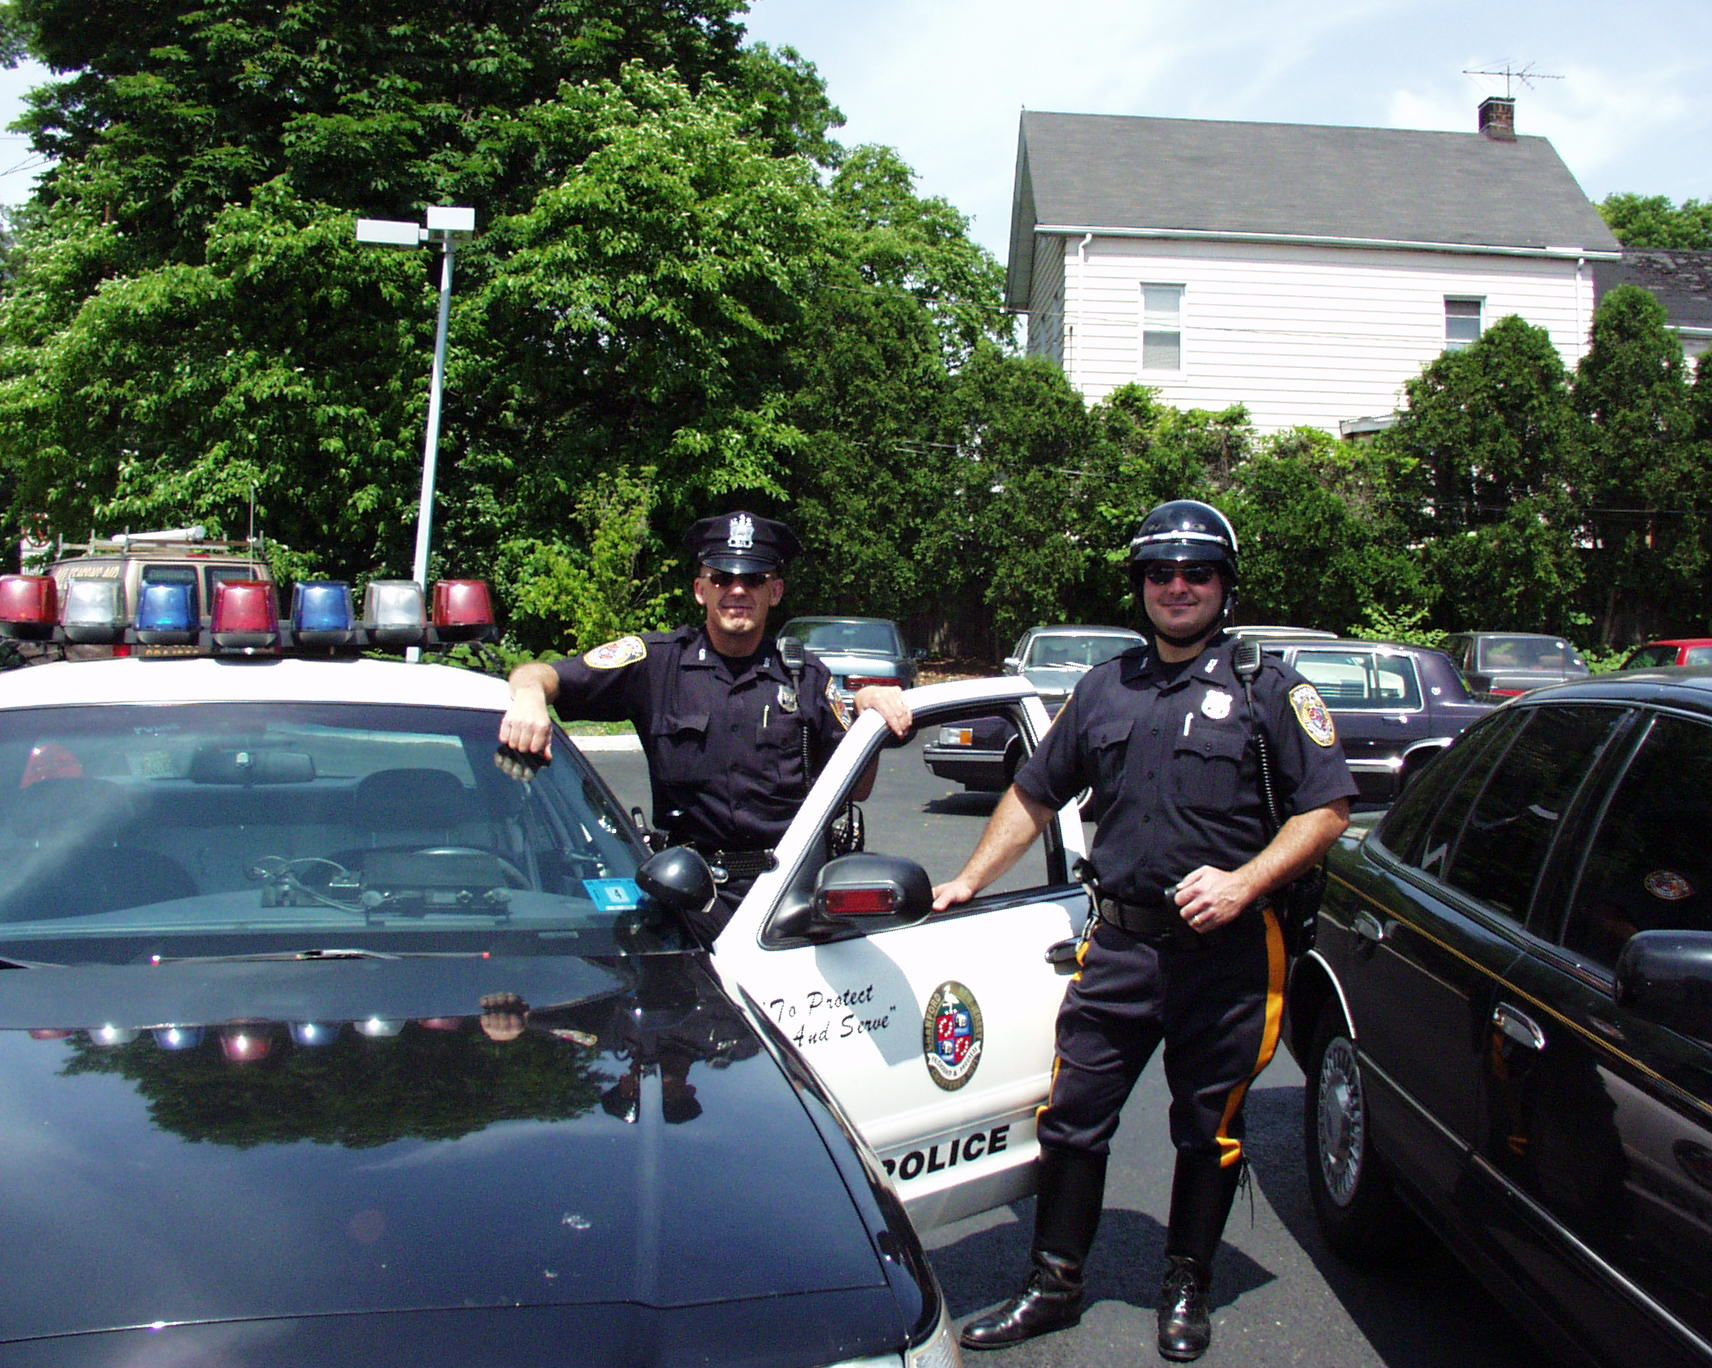 Flashback Friday Photo From June 1 2001 Shows Officers Steve Gachko And Frank Williams At North And Elizabeth Avenues Prior Police Department Police Cranford